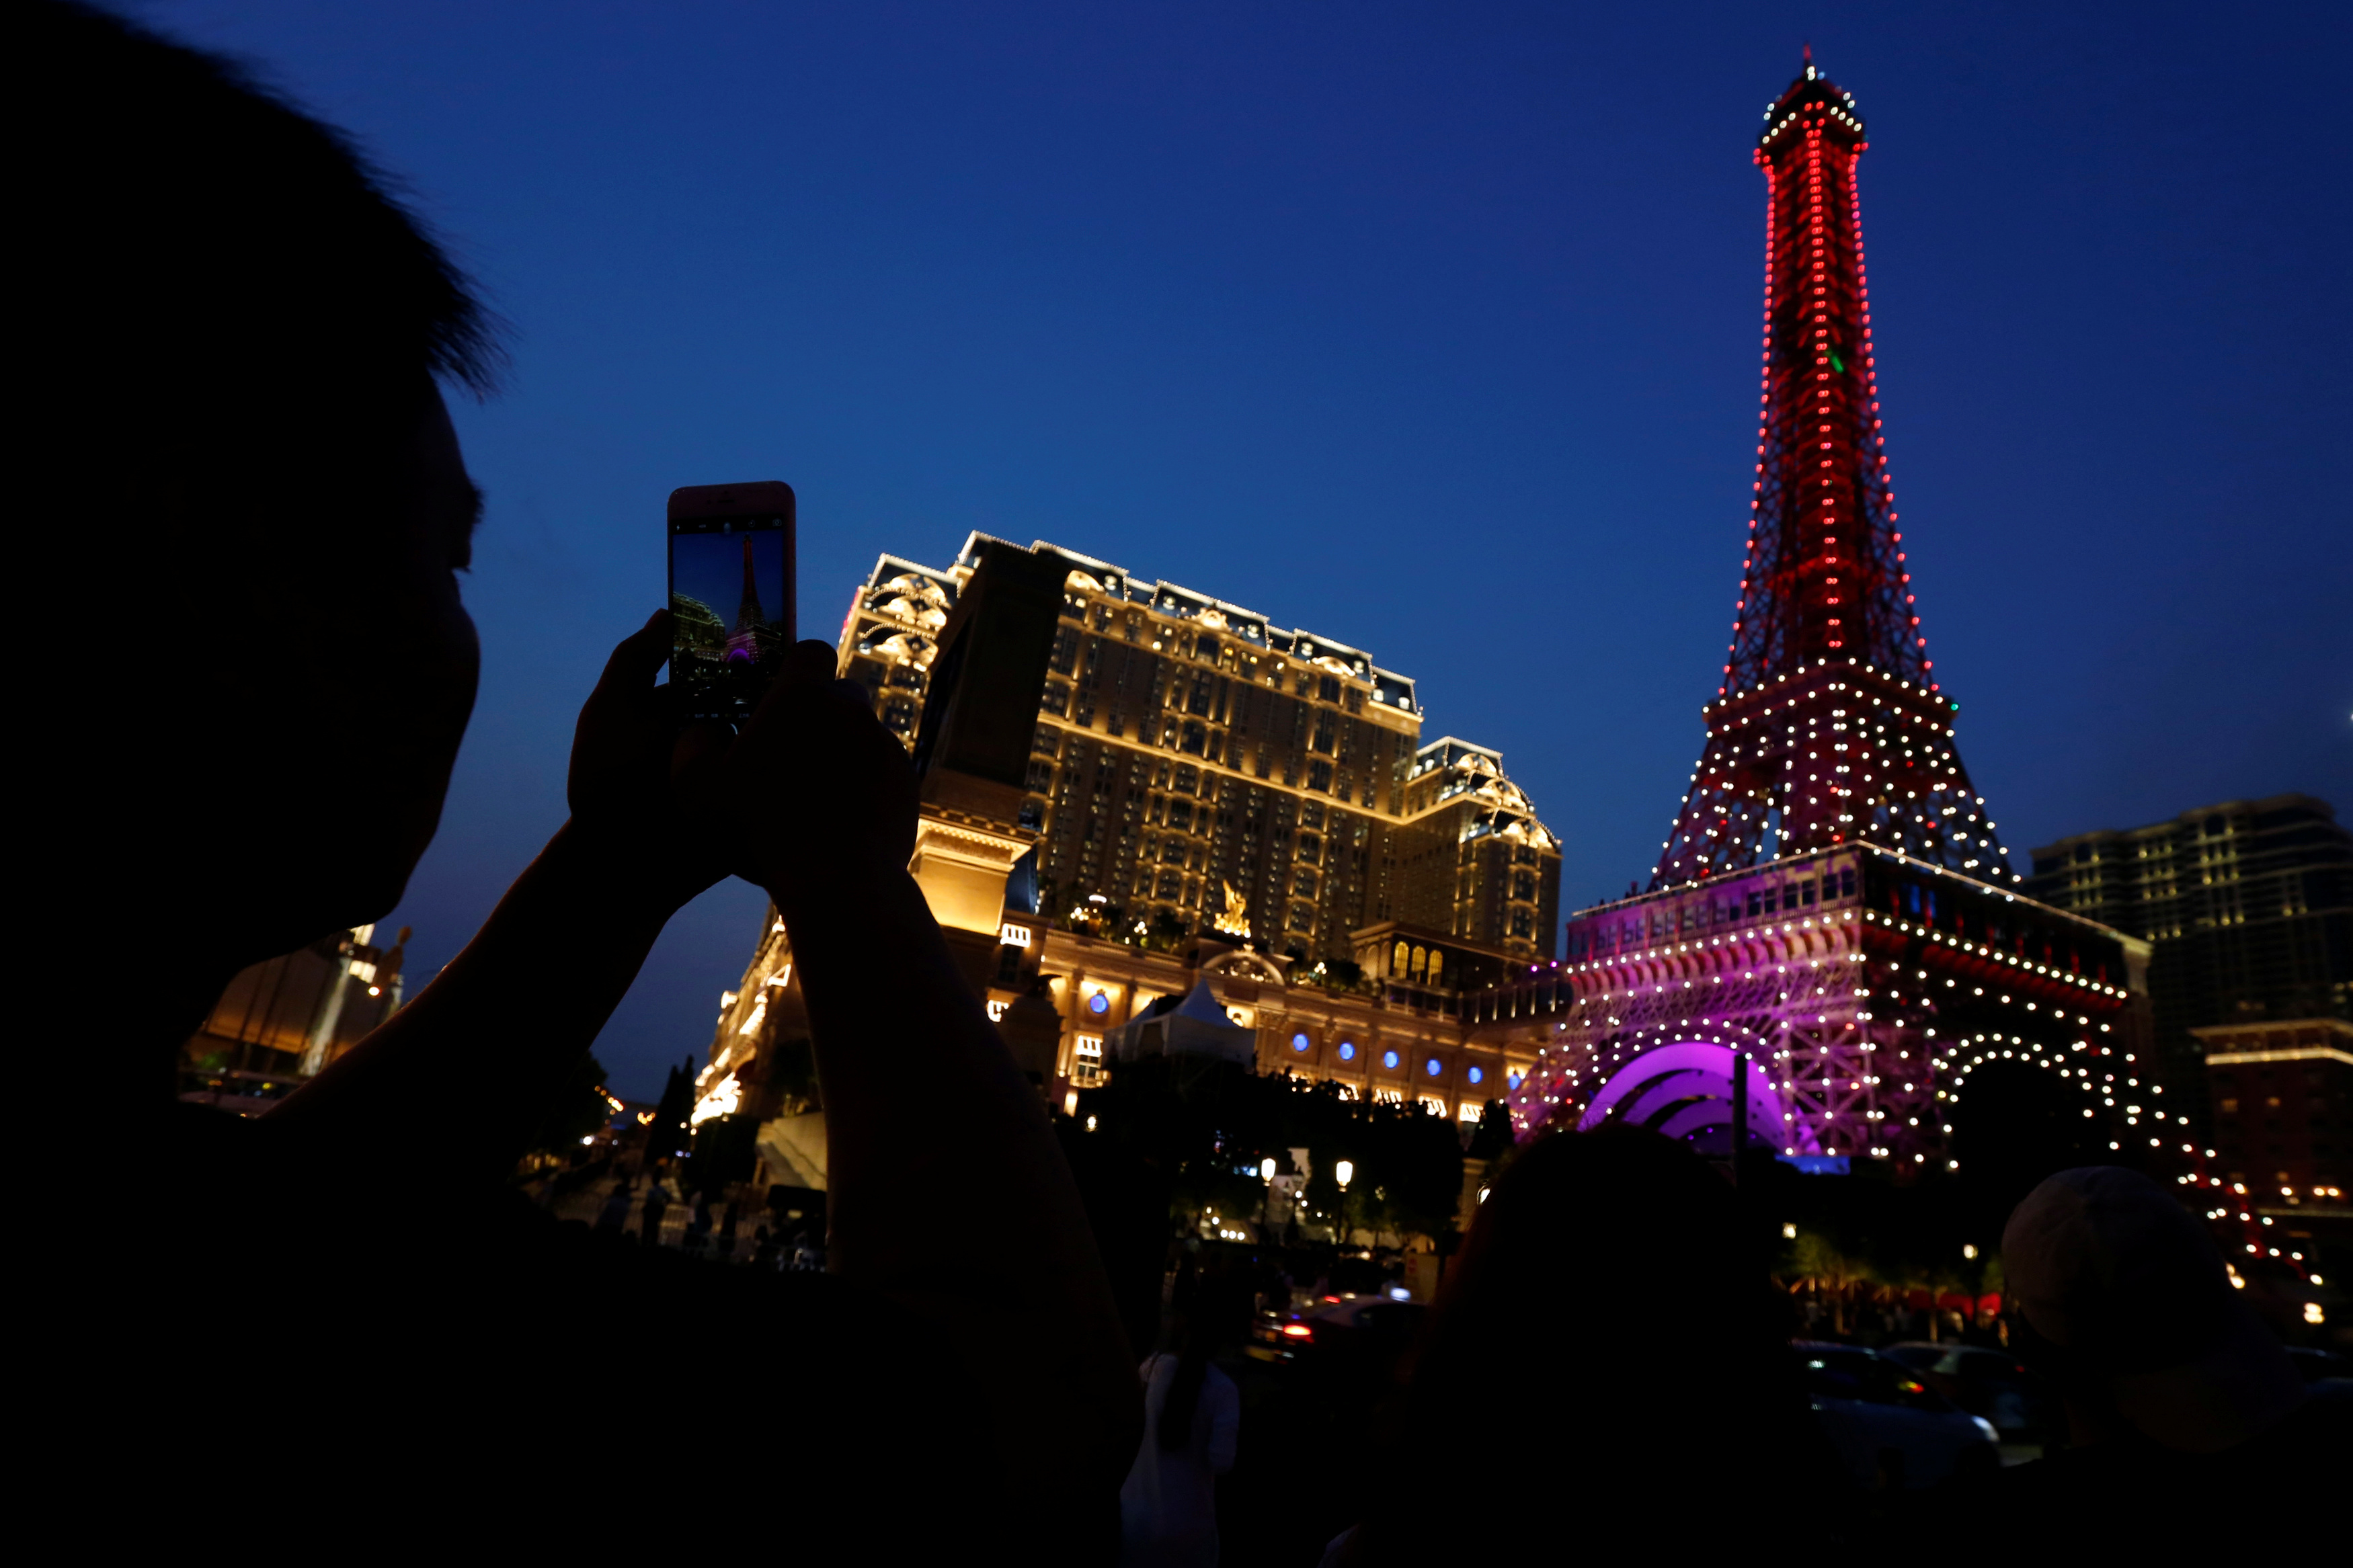 A man takes a photo of a replica of Eiffel Tower outside Parisian Macao as part of the Las Vegas Sands development in Macau, China September 13, 2016.